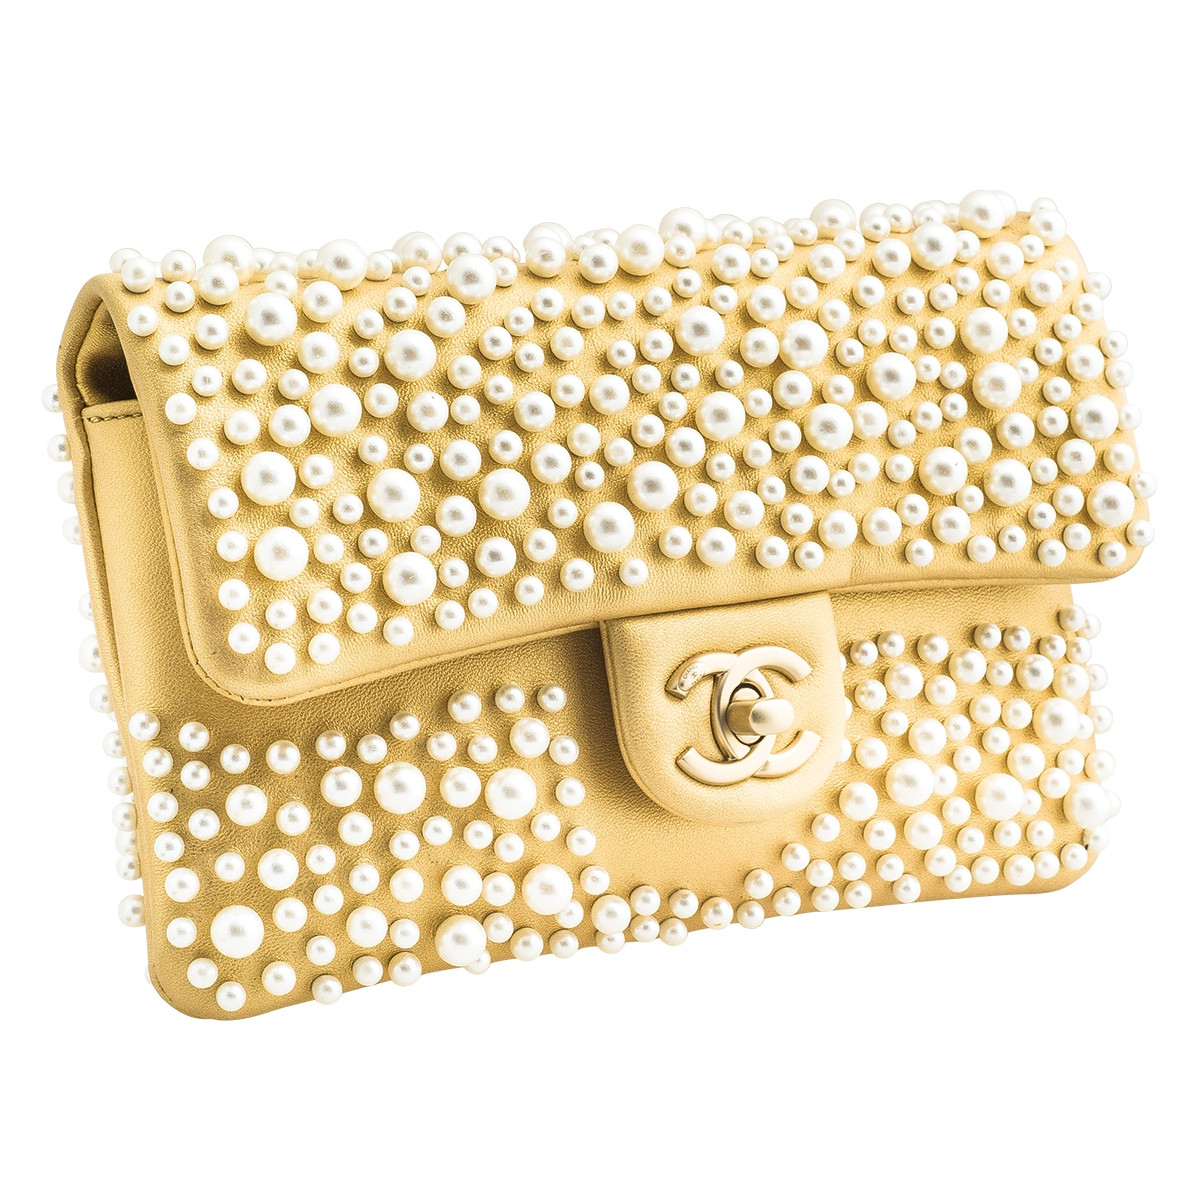 ab0557df2e49 Vintage Chanel Pearly Gold Flap Clutch Gallery Image